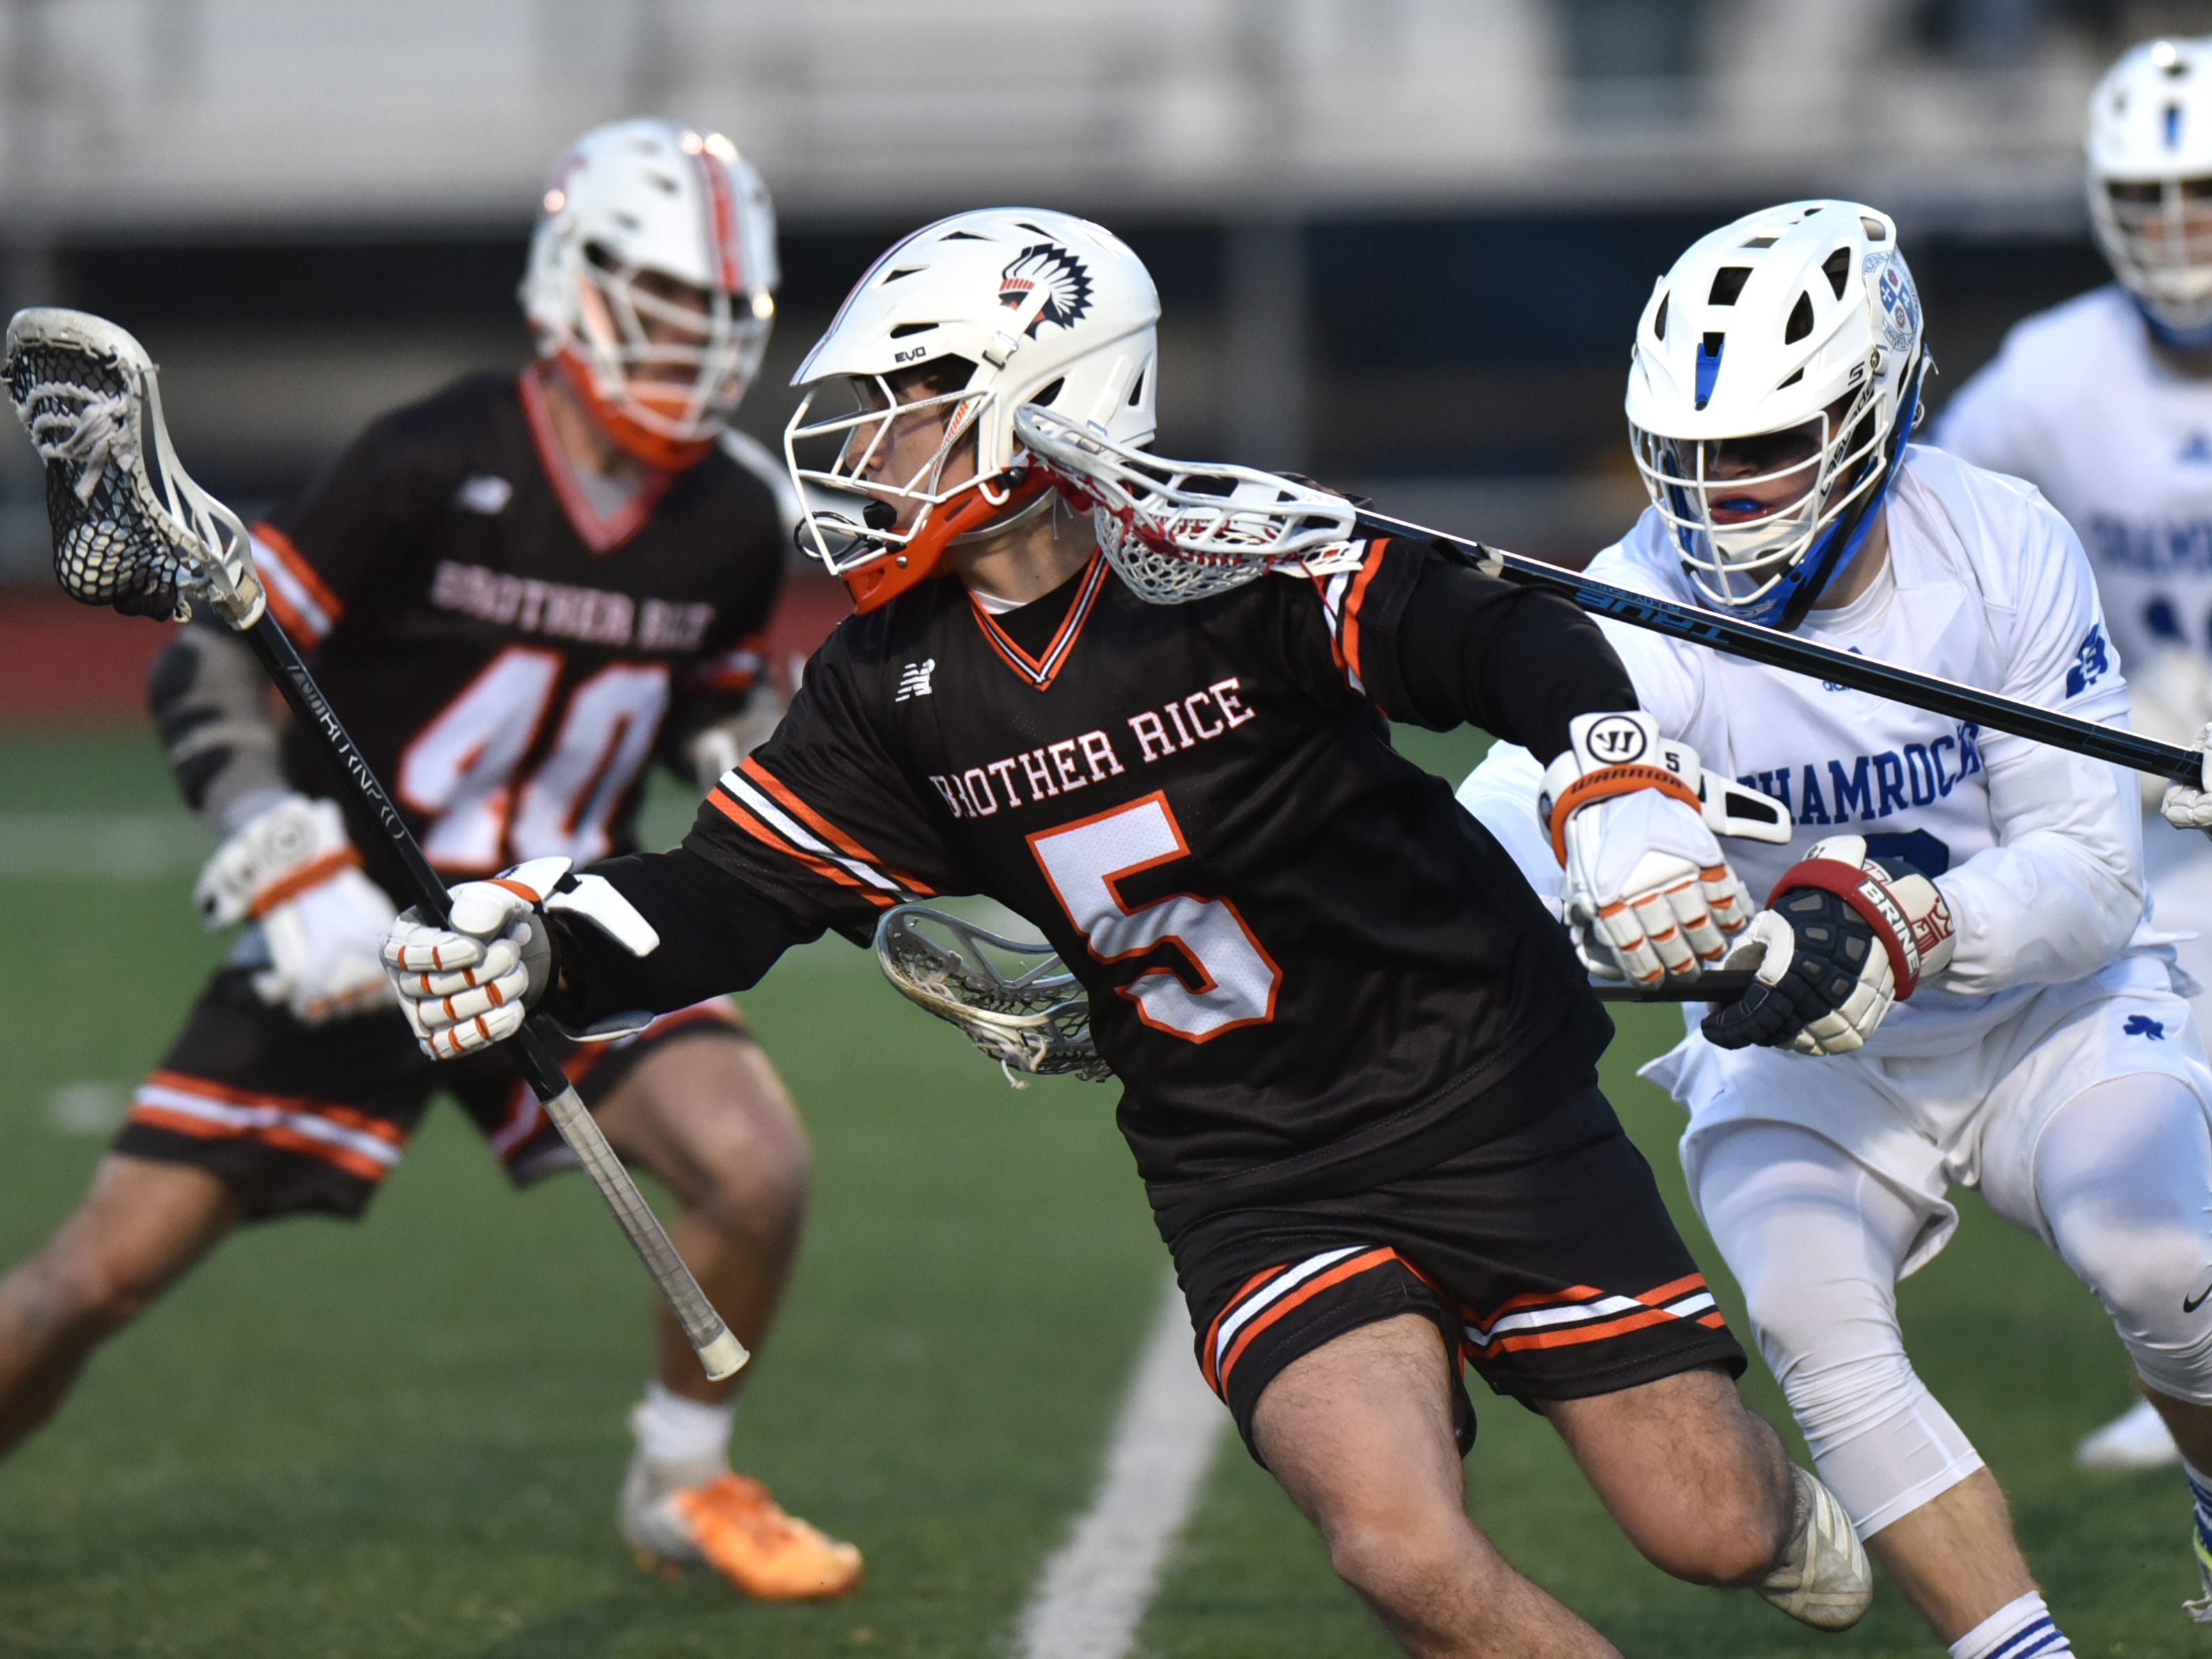 Birmingham Brother Rice player Dylan Braddock plays keep-away from two pursuing CC players.